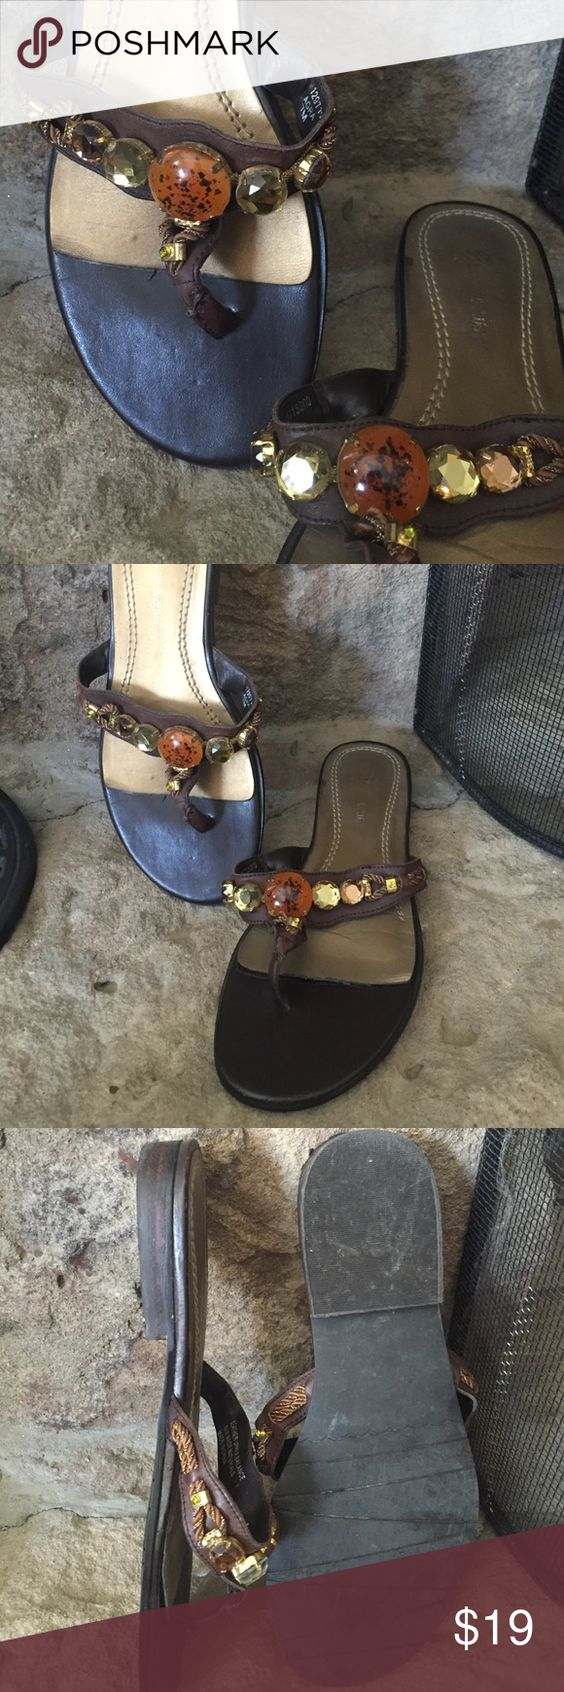 Etienne Aigner sandals These are pre loved, worn and have some scuffs, as you can see on the very front. But they are so cute and comfortable that I thought someone may want the second half of their life for a really good price. 😃 Top part is leather. Broken in and comfy. All beads are in place. Etienne Aigner Shoes Sandals